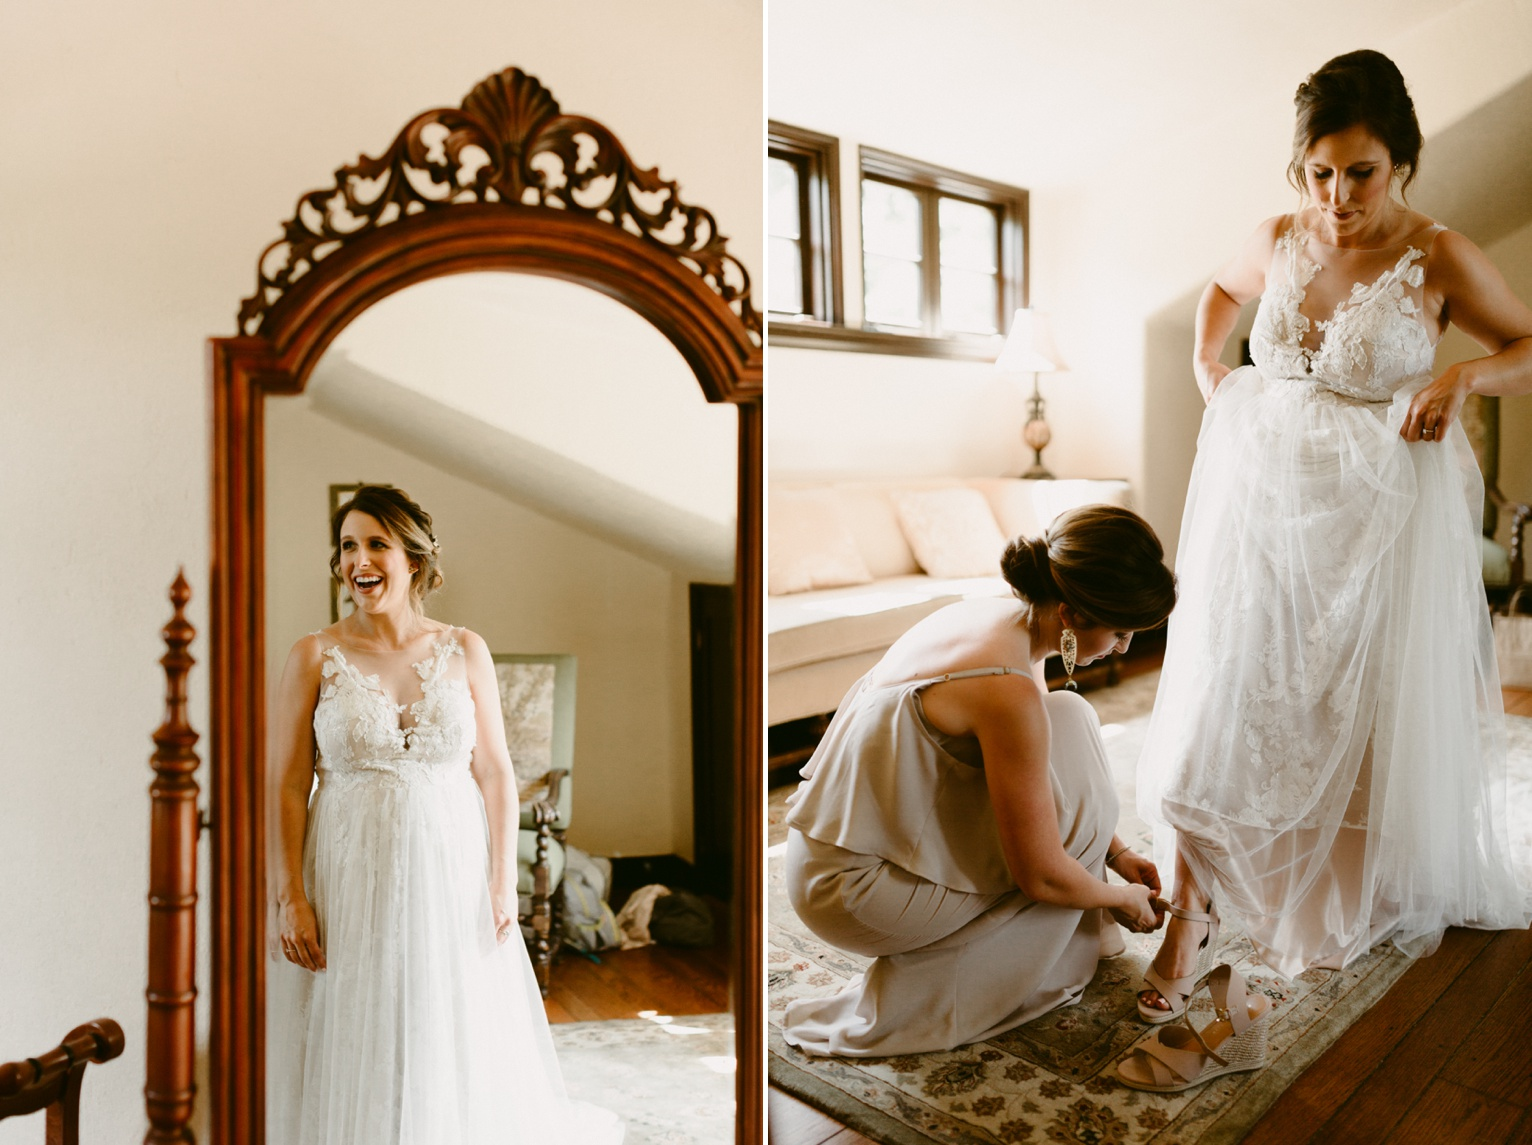 Dreamtownco.com_blog_Nick&Lindsay_Wedding_0032.jpg